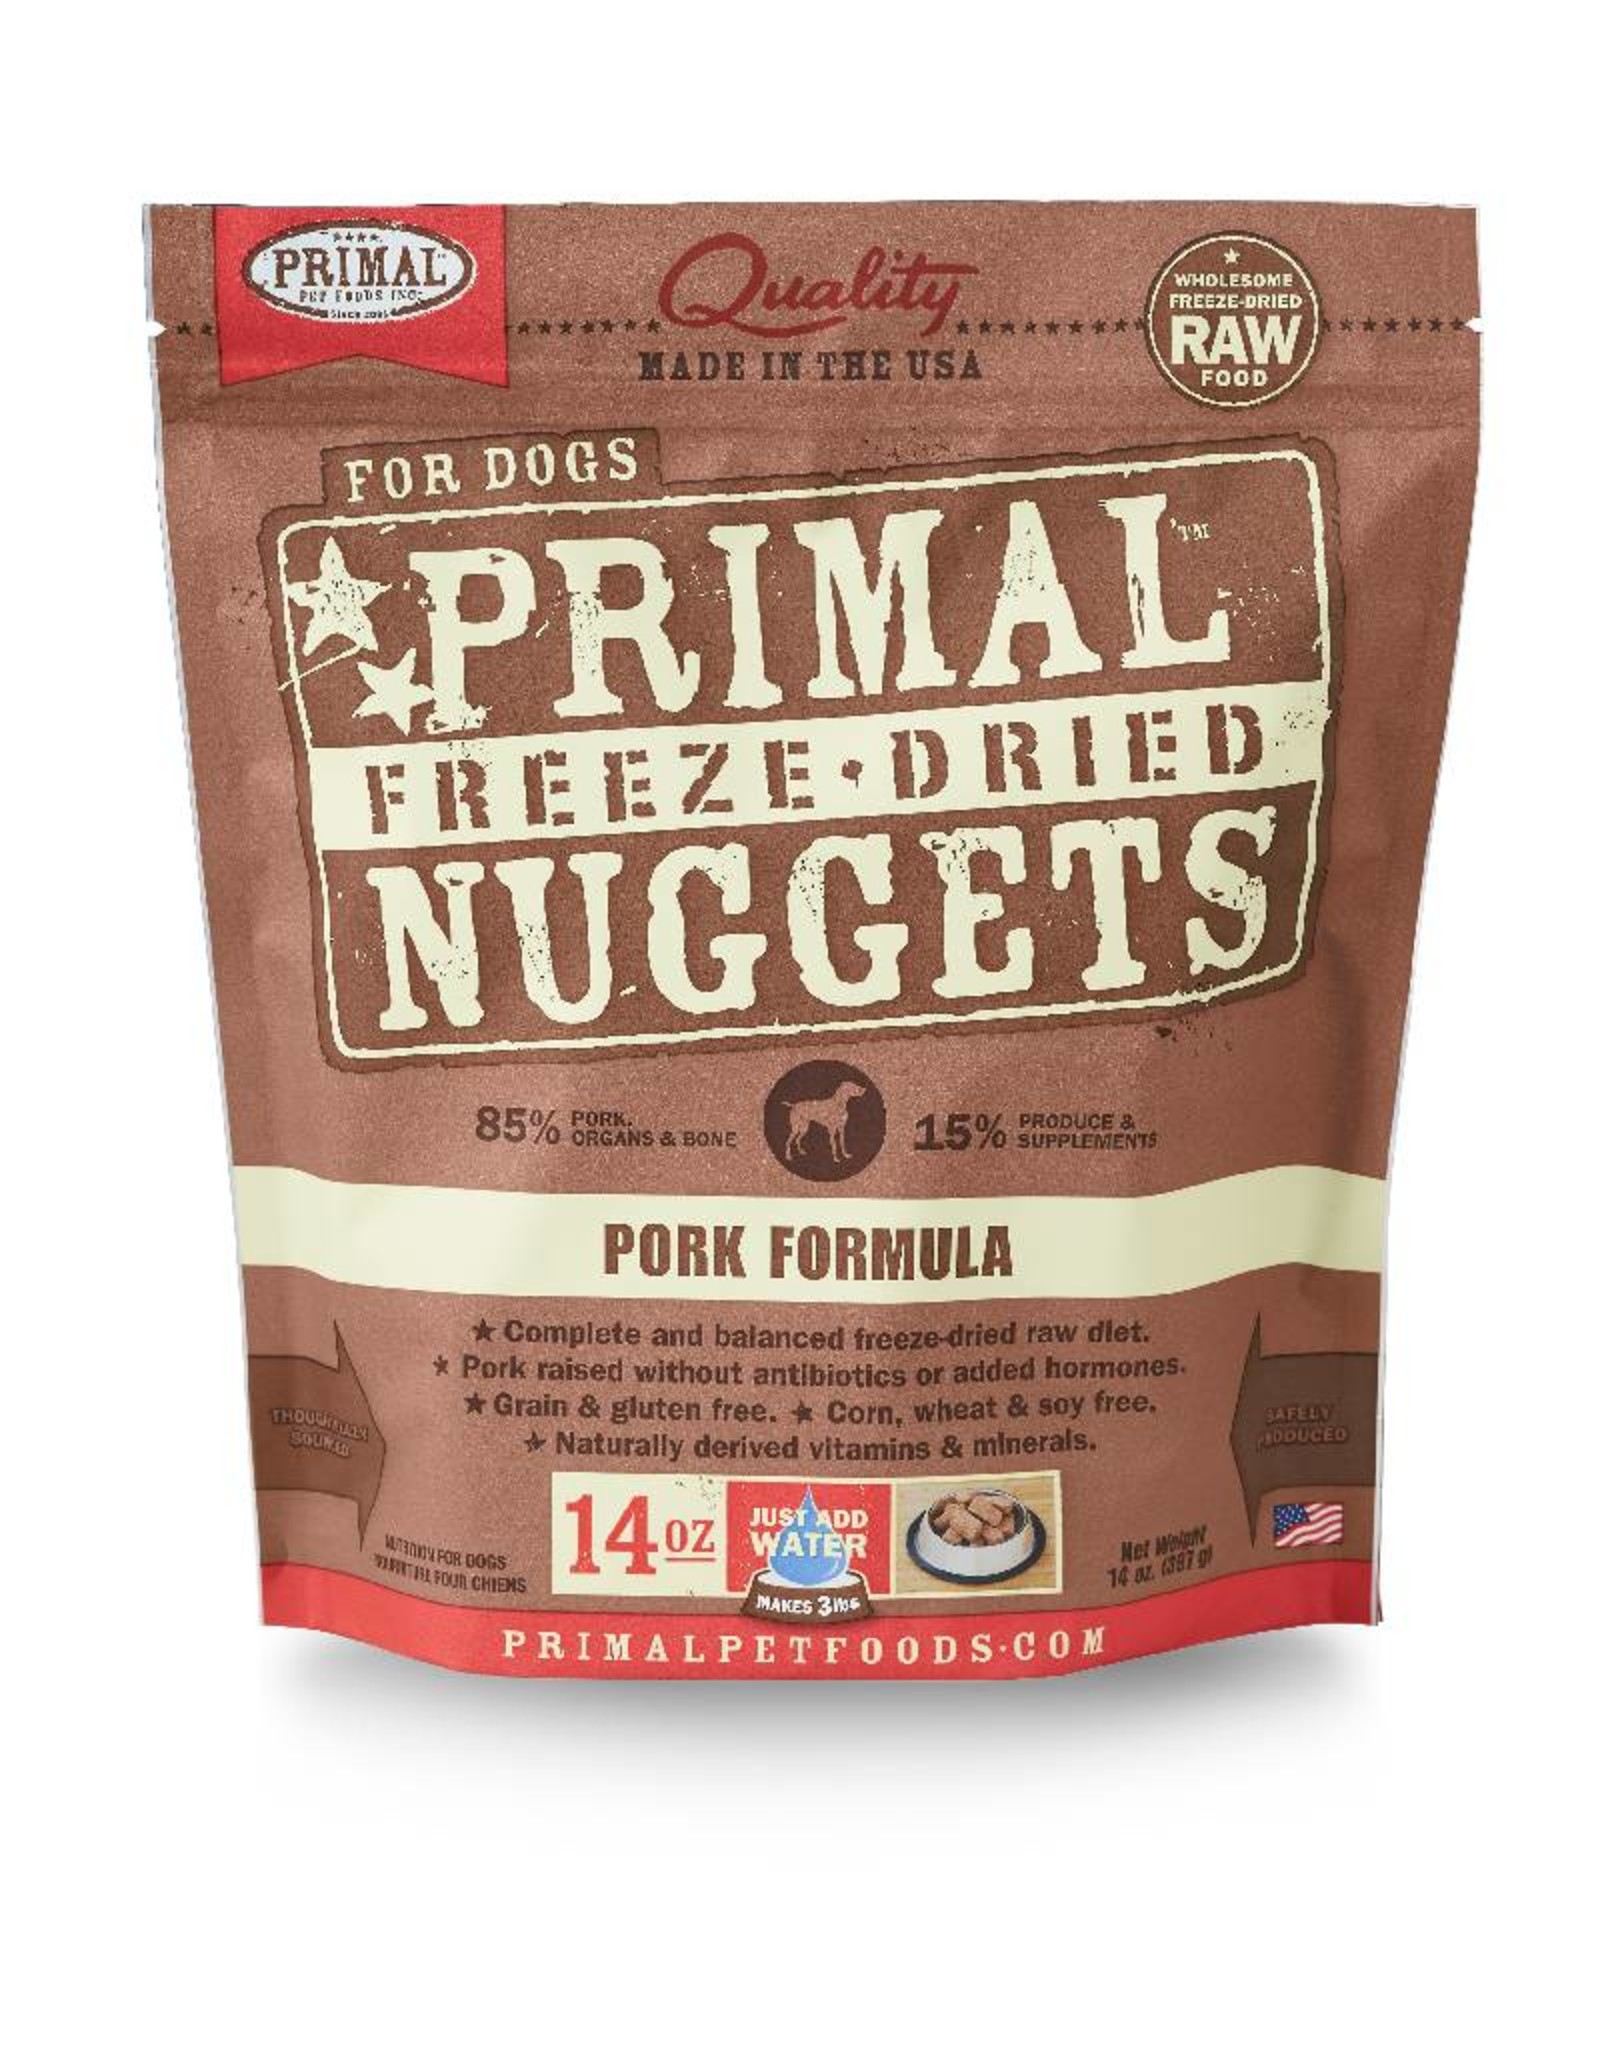 PRIMAL PET FOODS Primal | Freeze Dried Nuggets Canine Pork Formula